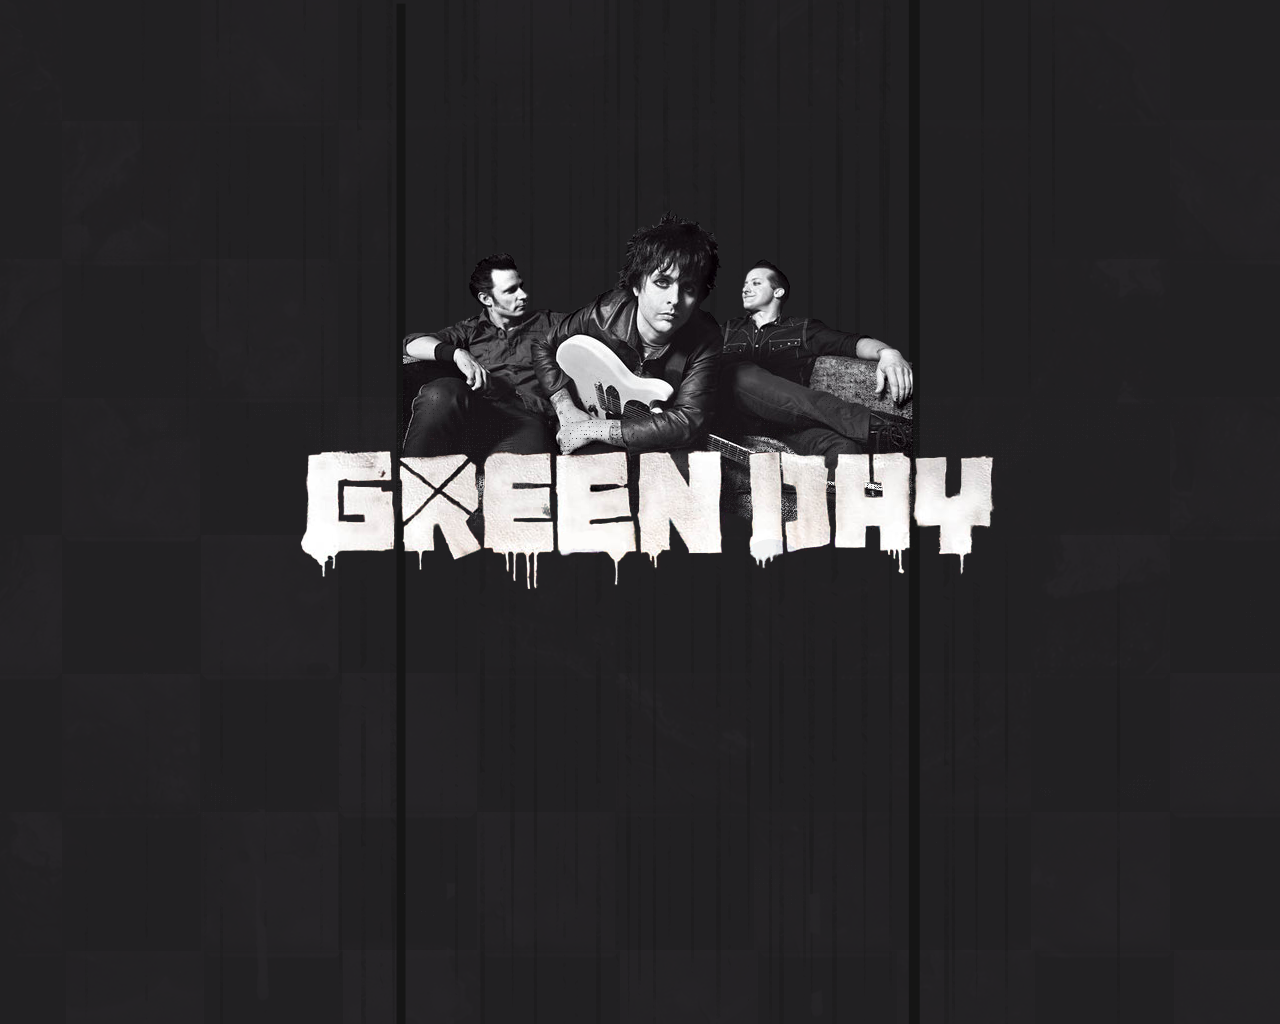 Amazing Wallpaper Logo Green Day - Green_Day_Wallpaper  You Should Have_737044.png